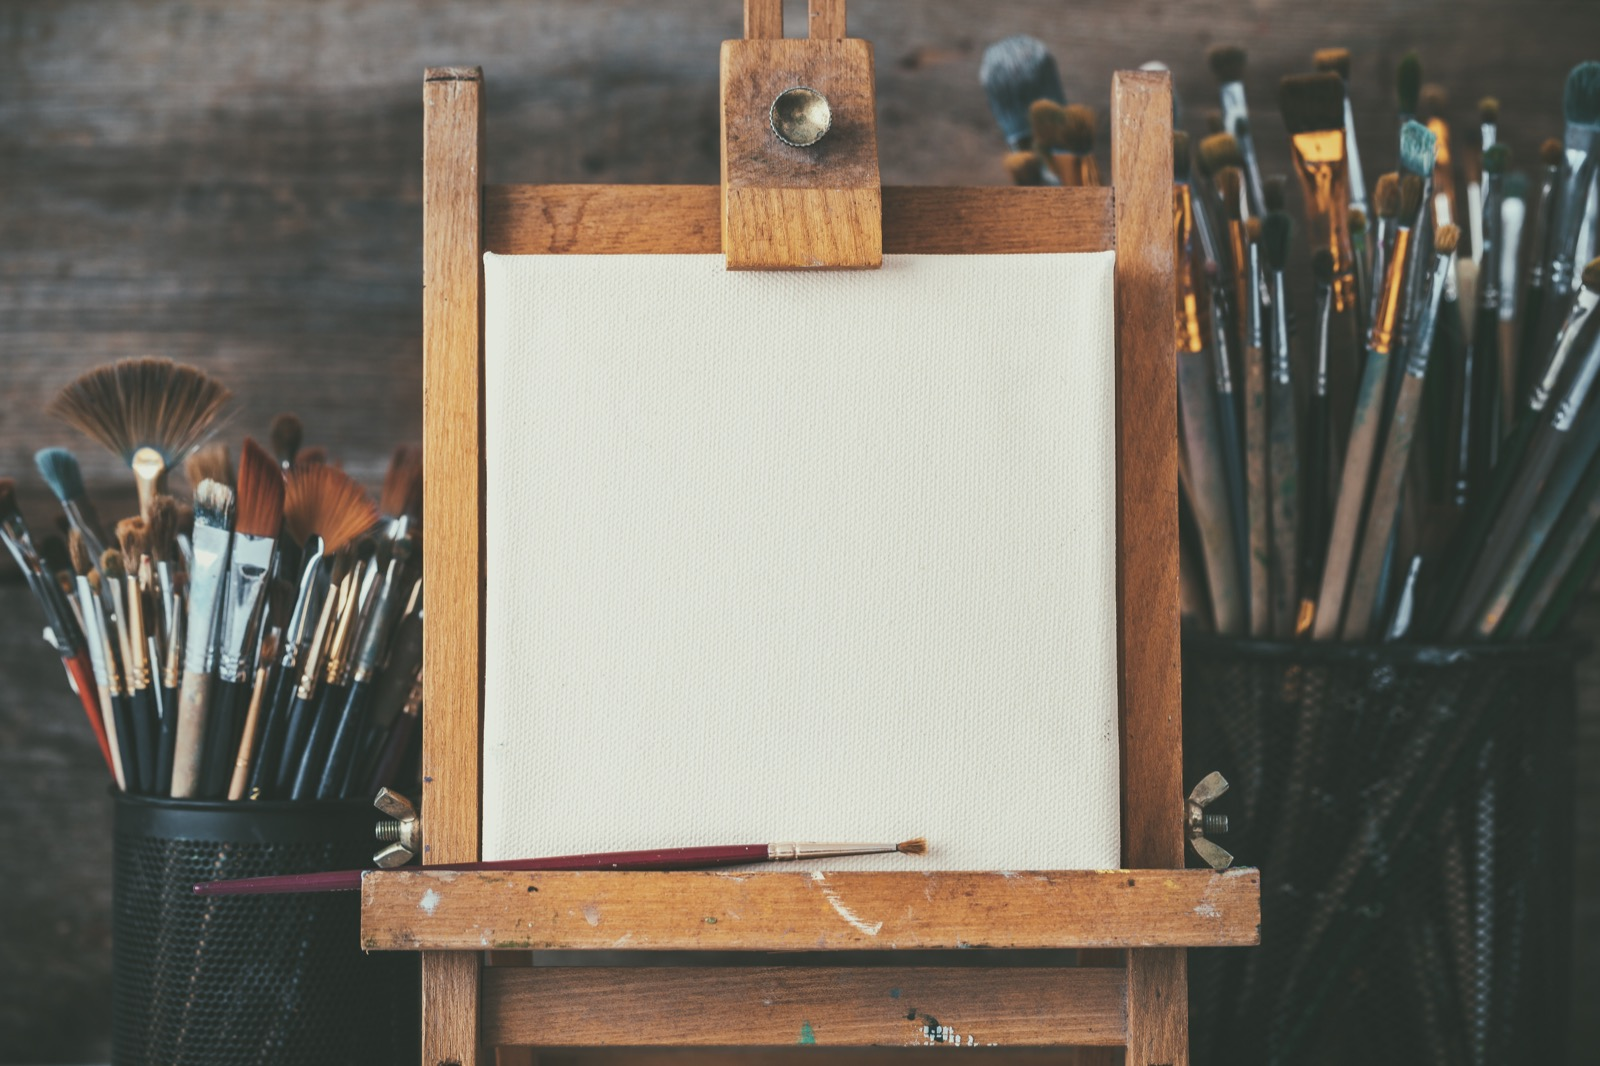 Artistic-equipment-in-a-artist-studio-empty-artist-canvas-on-wooden-easel-and-paint-brushes-Retro-toned-photo.-668060762_5196x3464_Web.jpeg